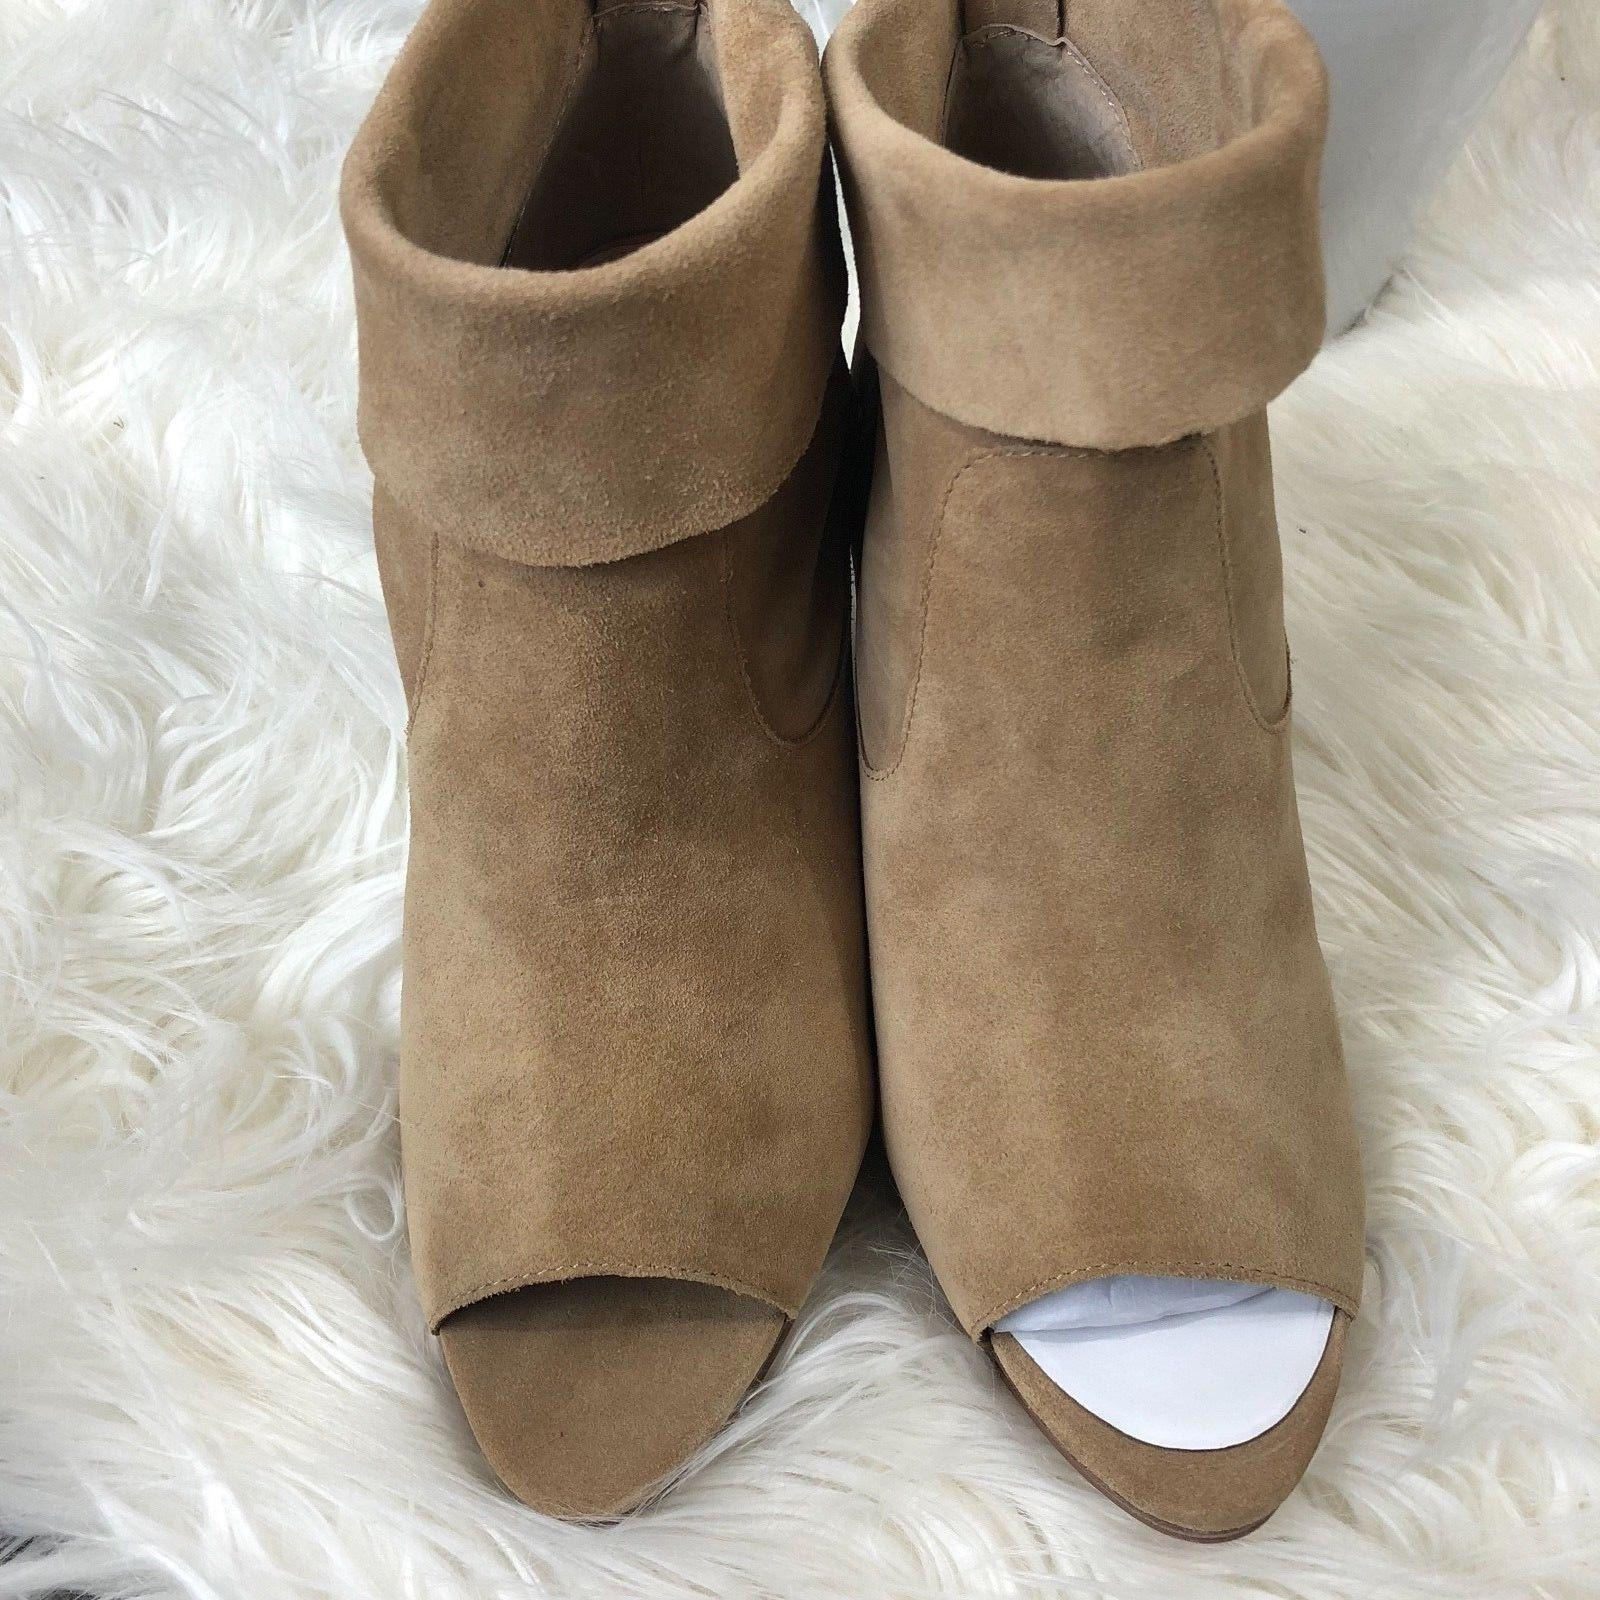 f283ab450087 ... Vince Camuto Camuto Camuto Tan Ankle Chunky Heel Wooden Open Toe Boots  Booties Size US ...